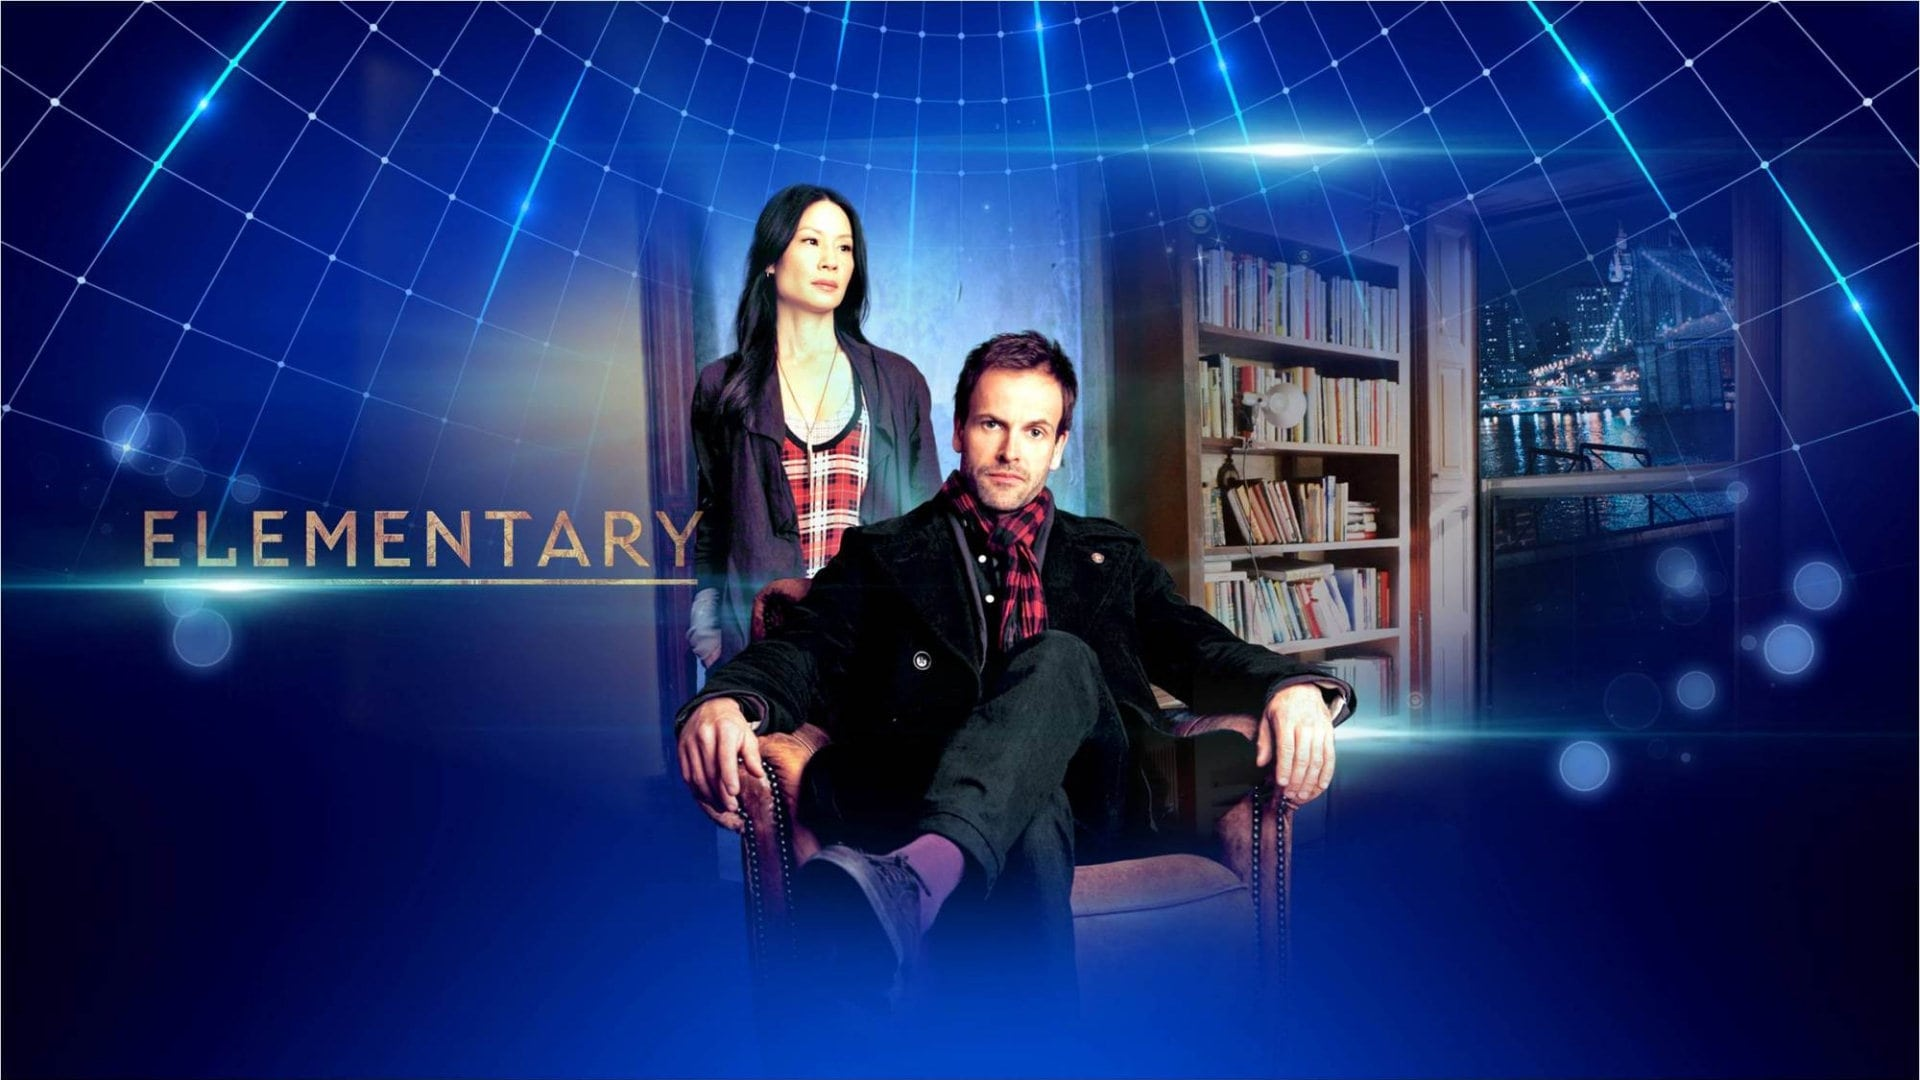 Elementary - Season 4 Episode 16 : Hounded